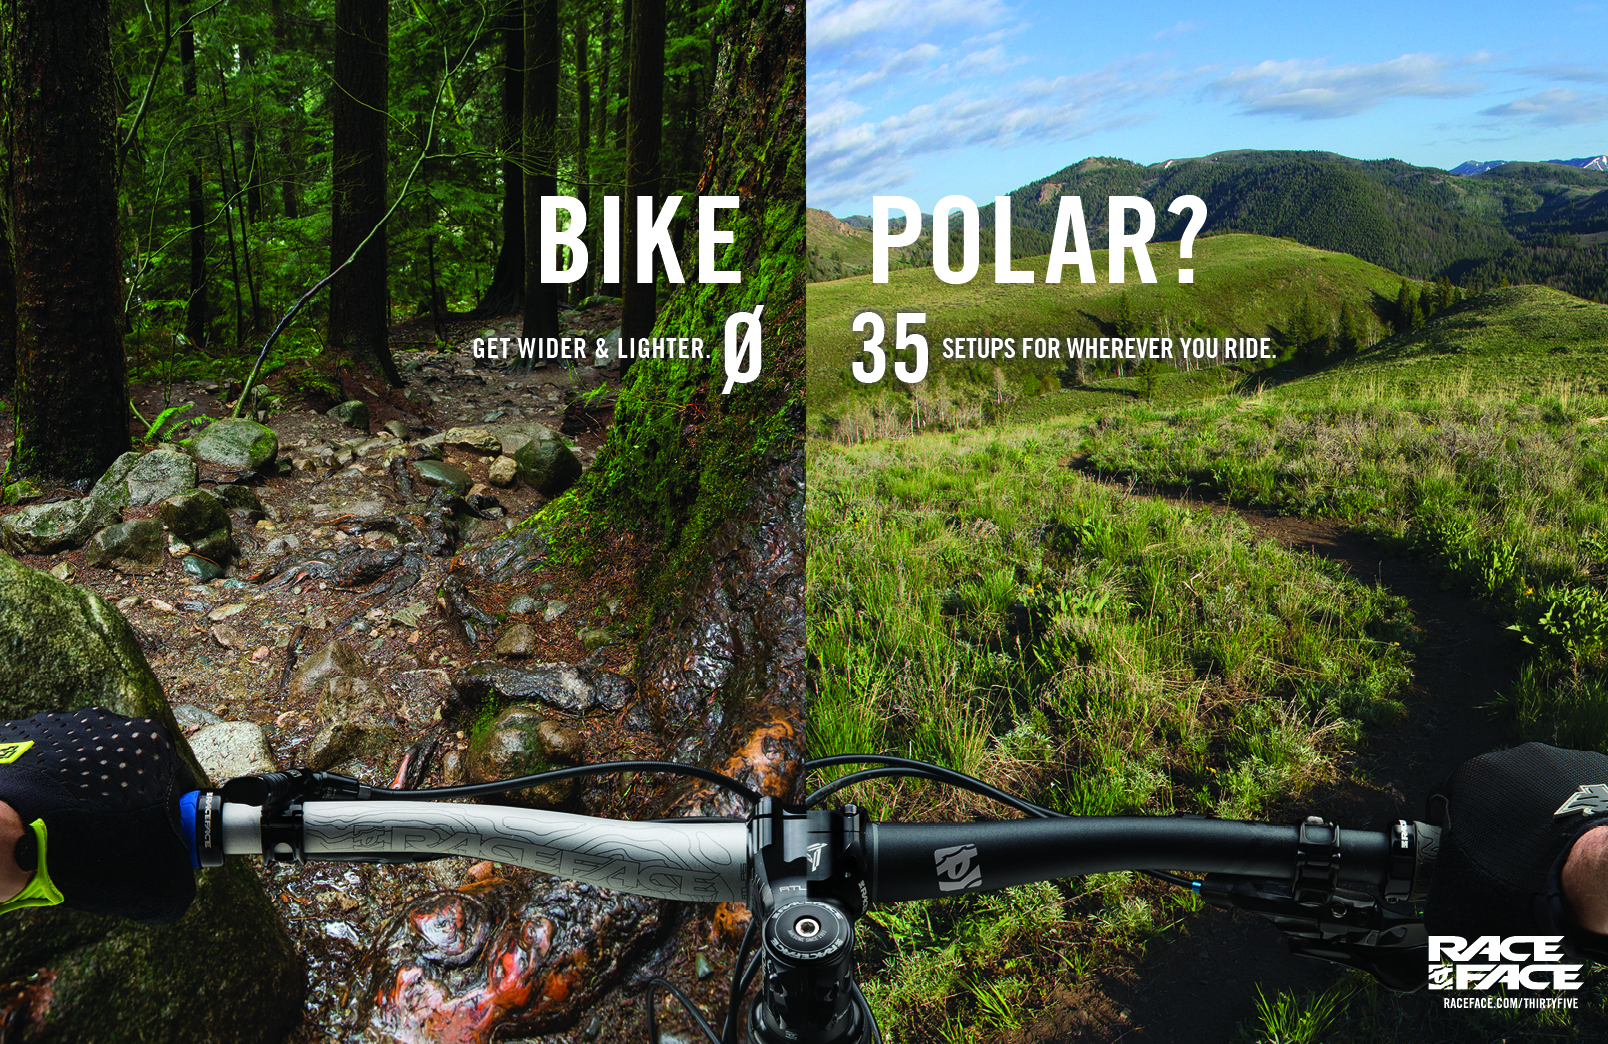 Bike Polar Print Ad